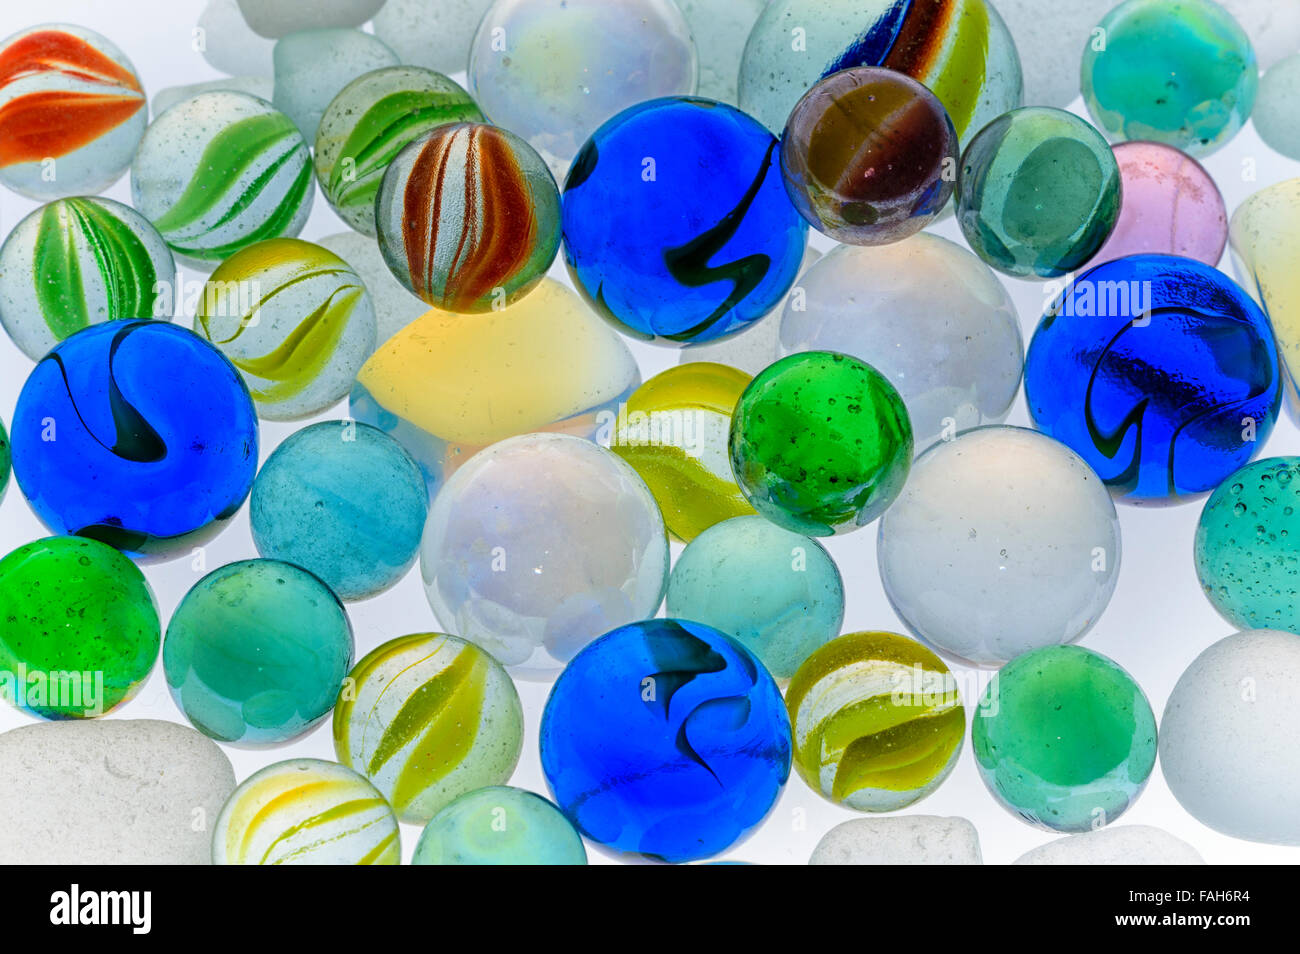 marbles - Stock Image